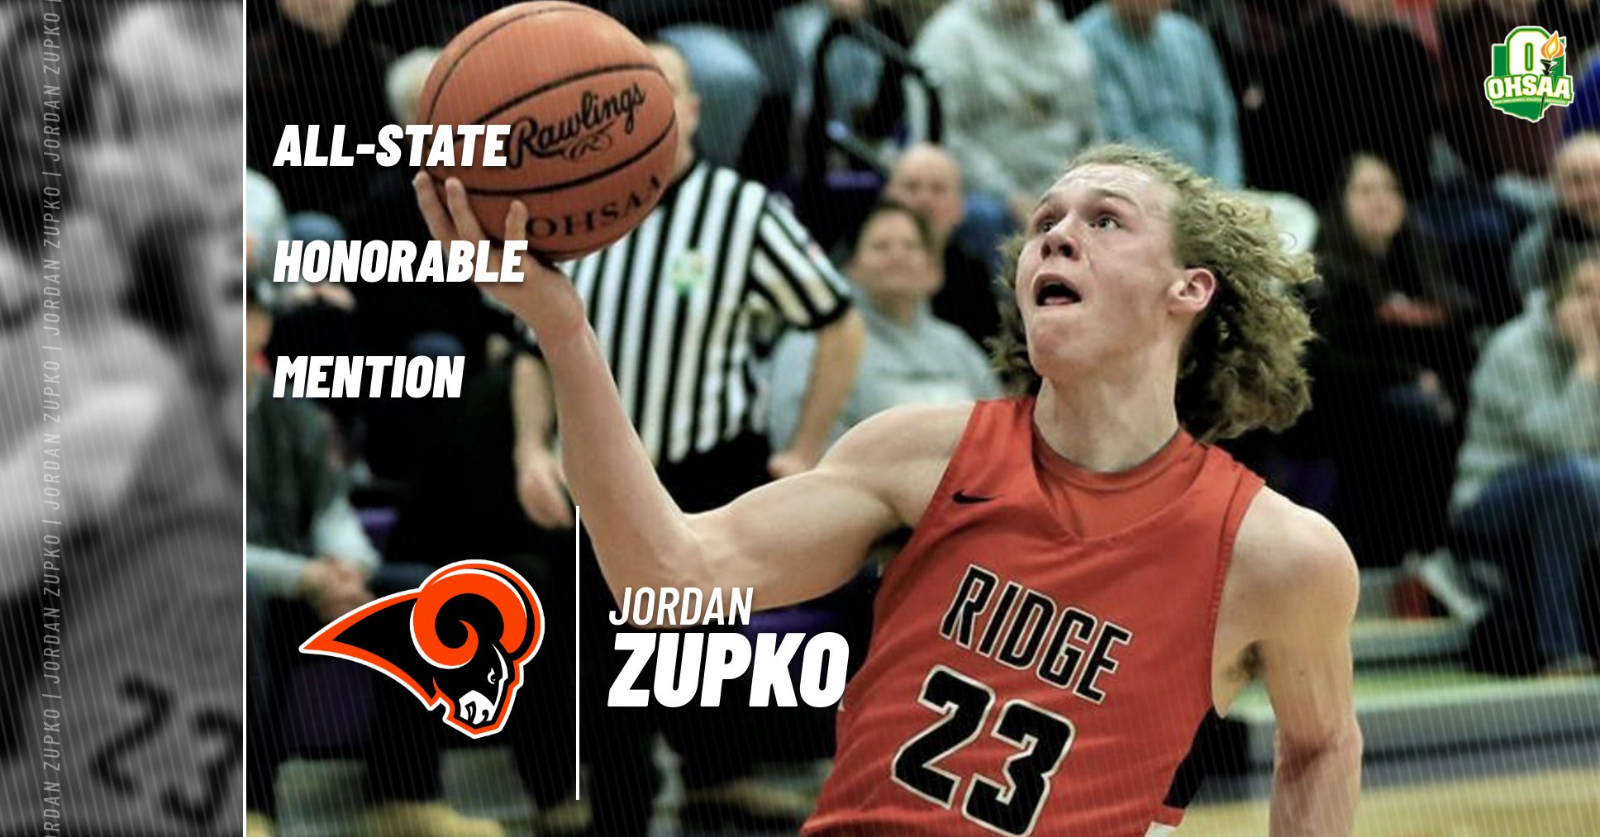 Zupko Earns All-State Honorable Mention